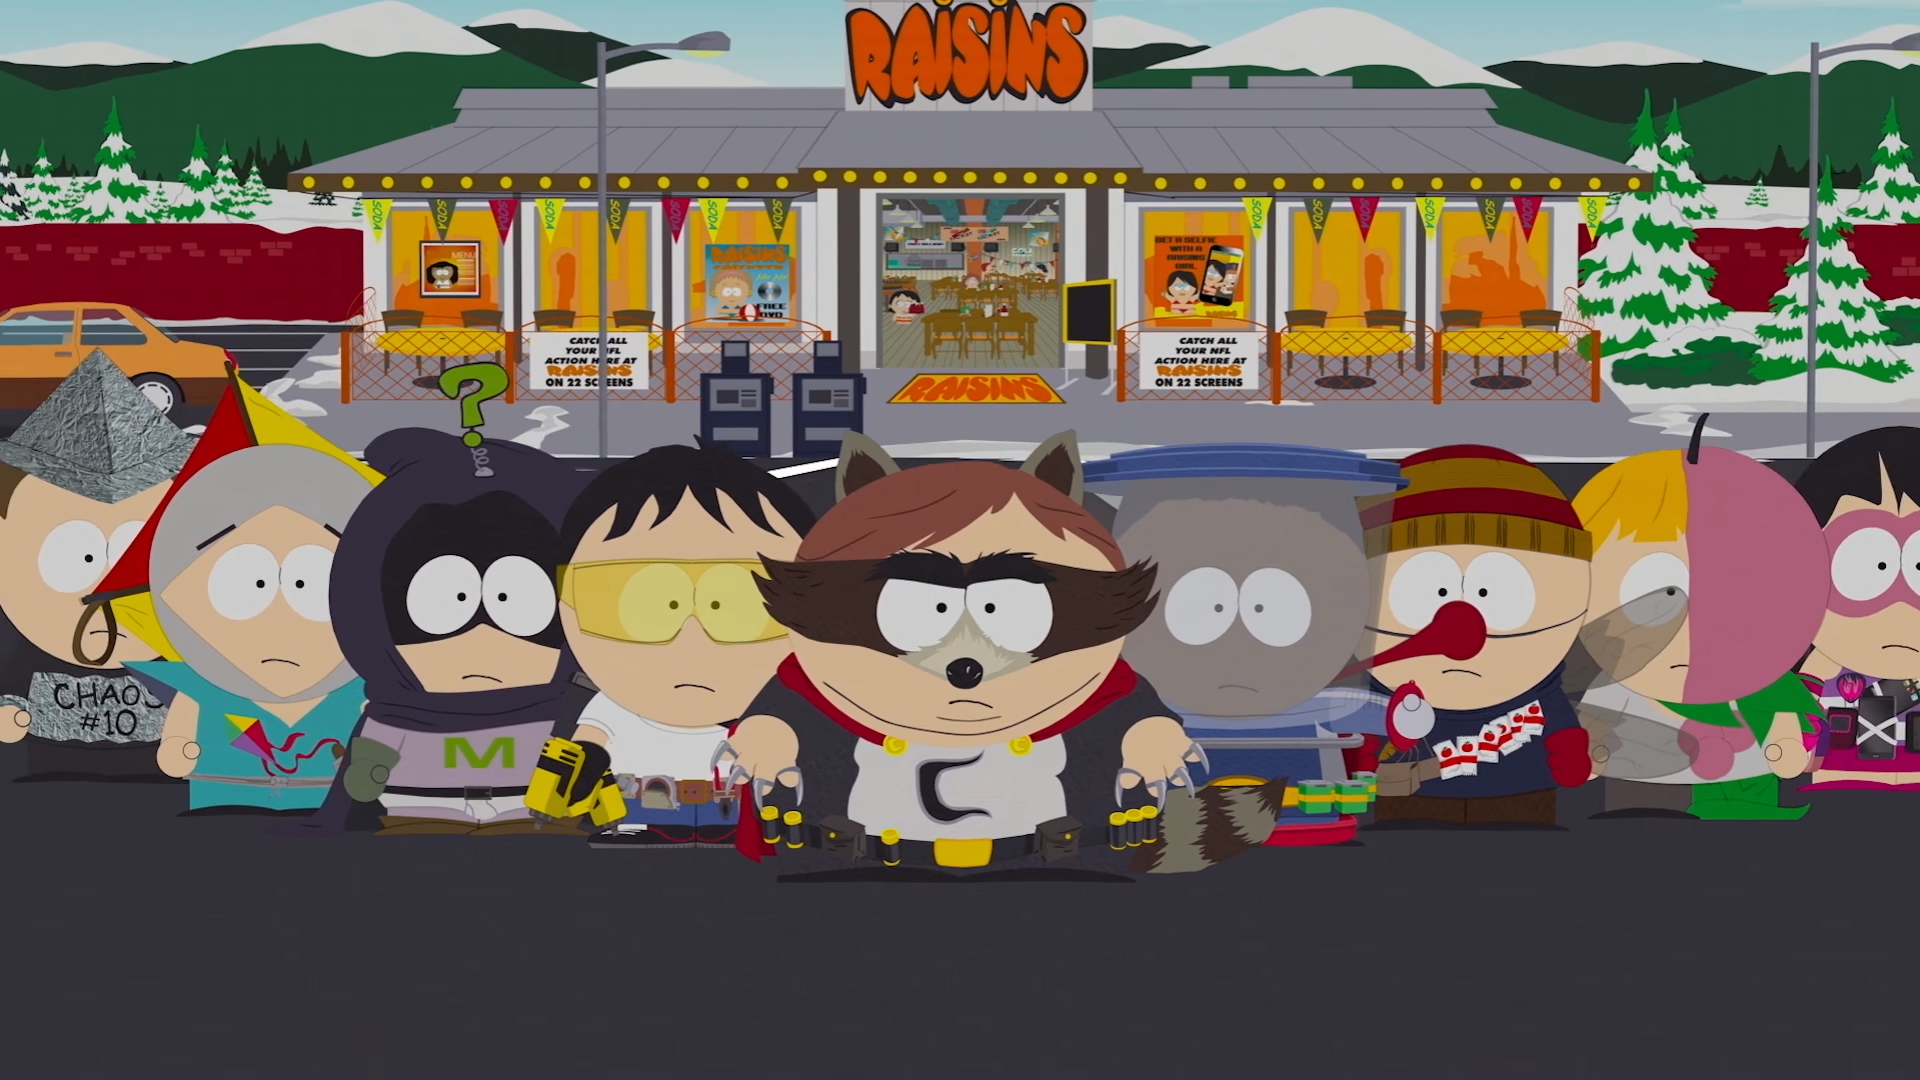 South Park The Fractured But Whole HD Wallpaper 21   1920 X 1080 1920x1080